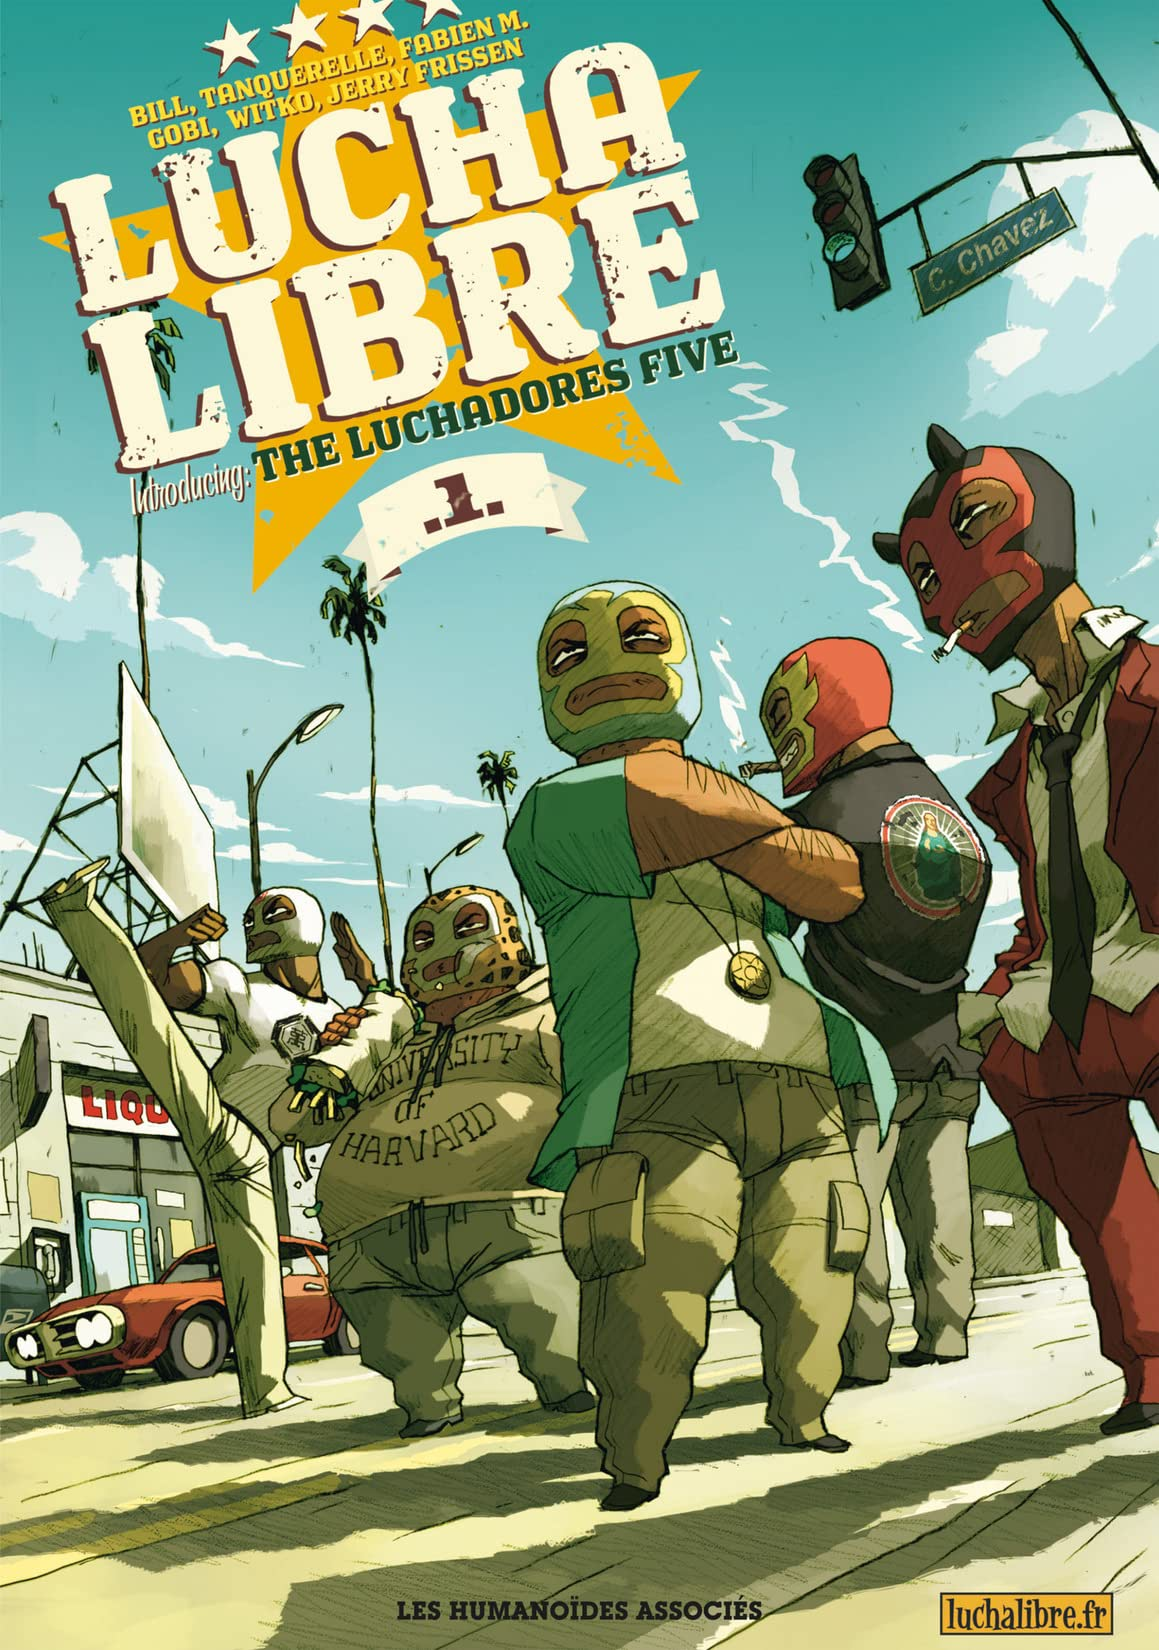 Lucha Libre Vol. 1: Introducing the Luchadores Five